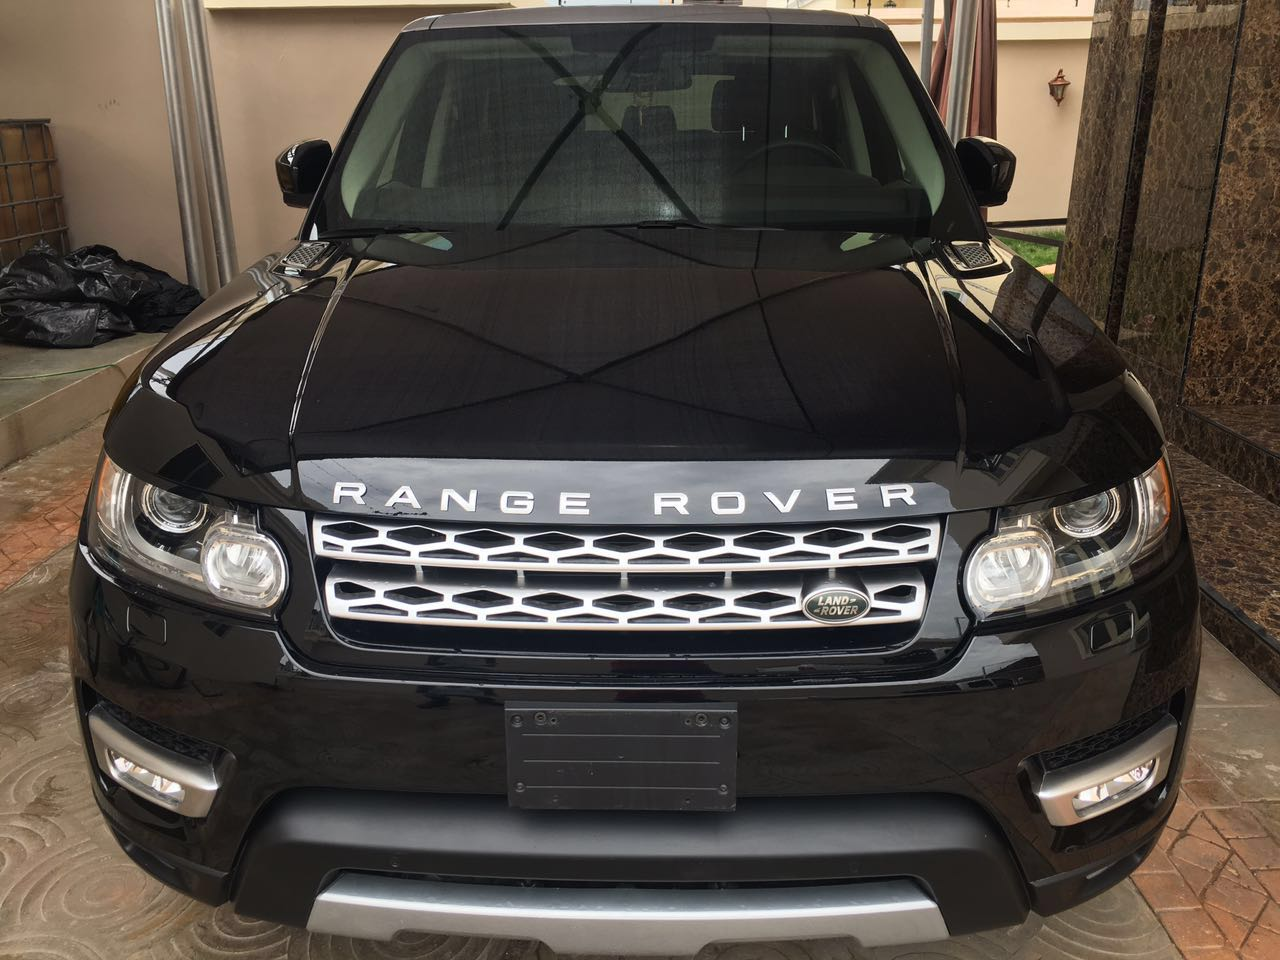 Mint 016 2017 Range Rover Sport H S E Price 43m Negotiable Autos Nairaland